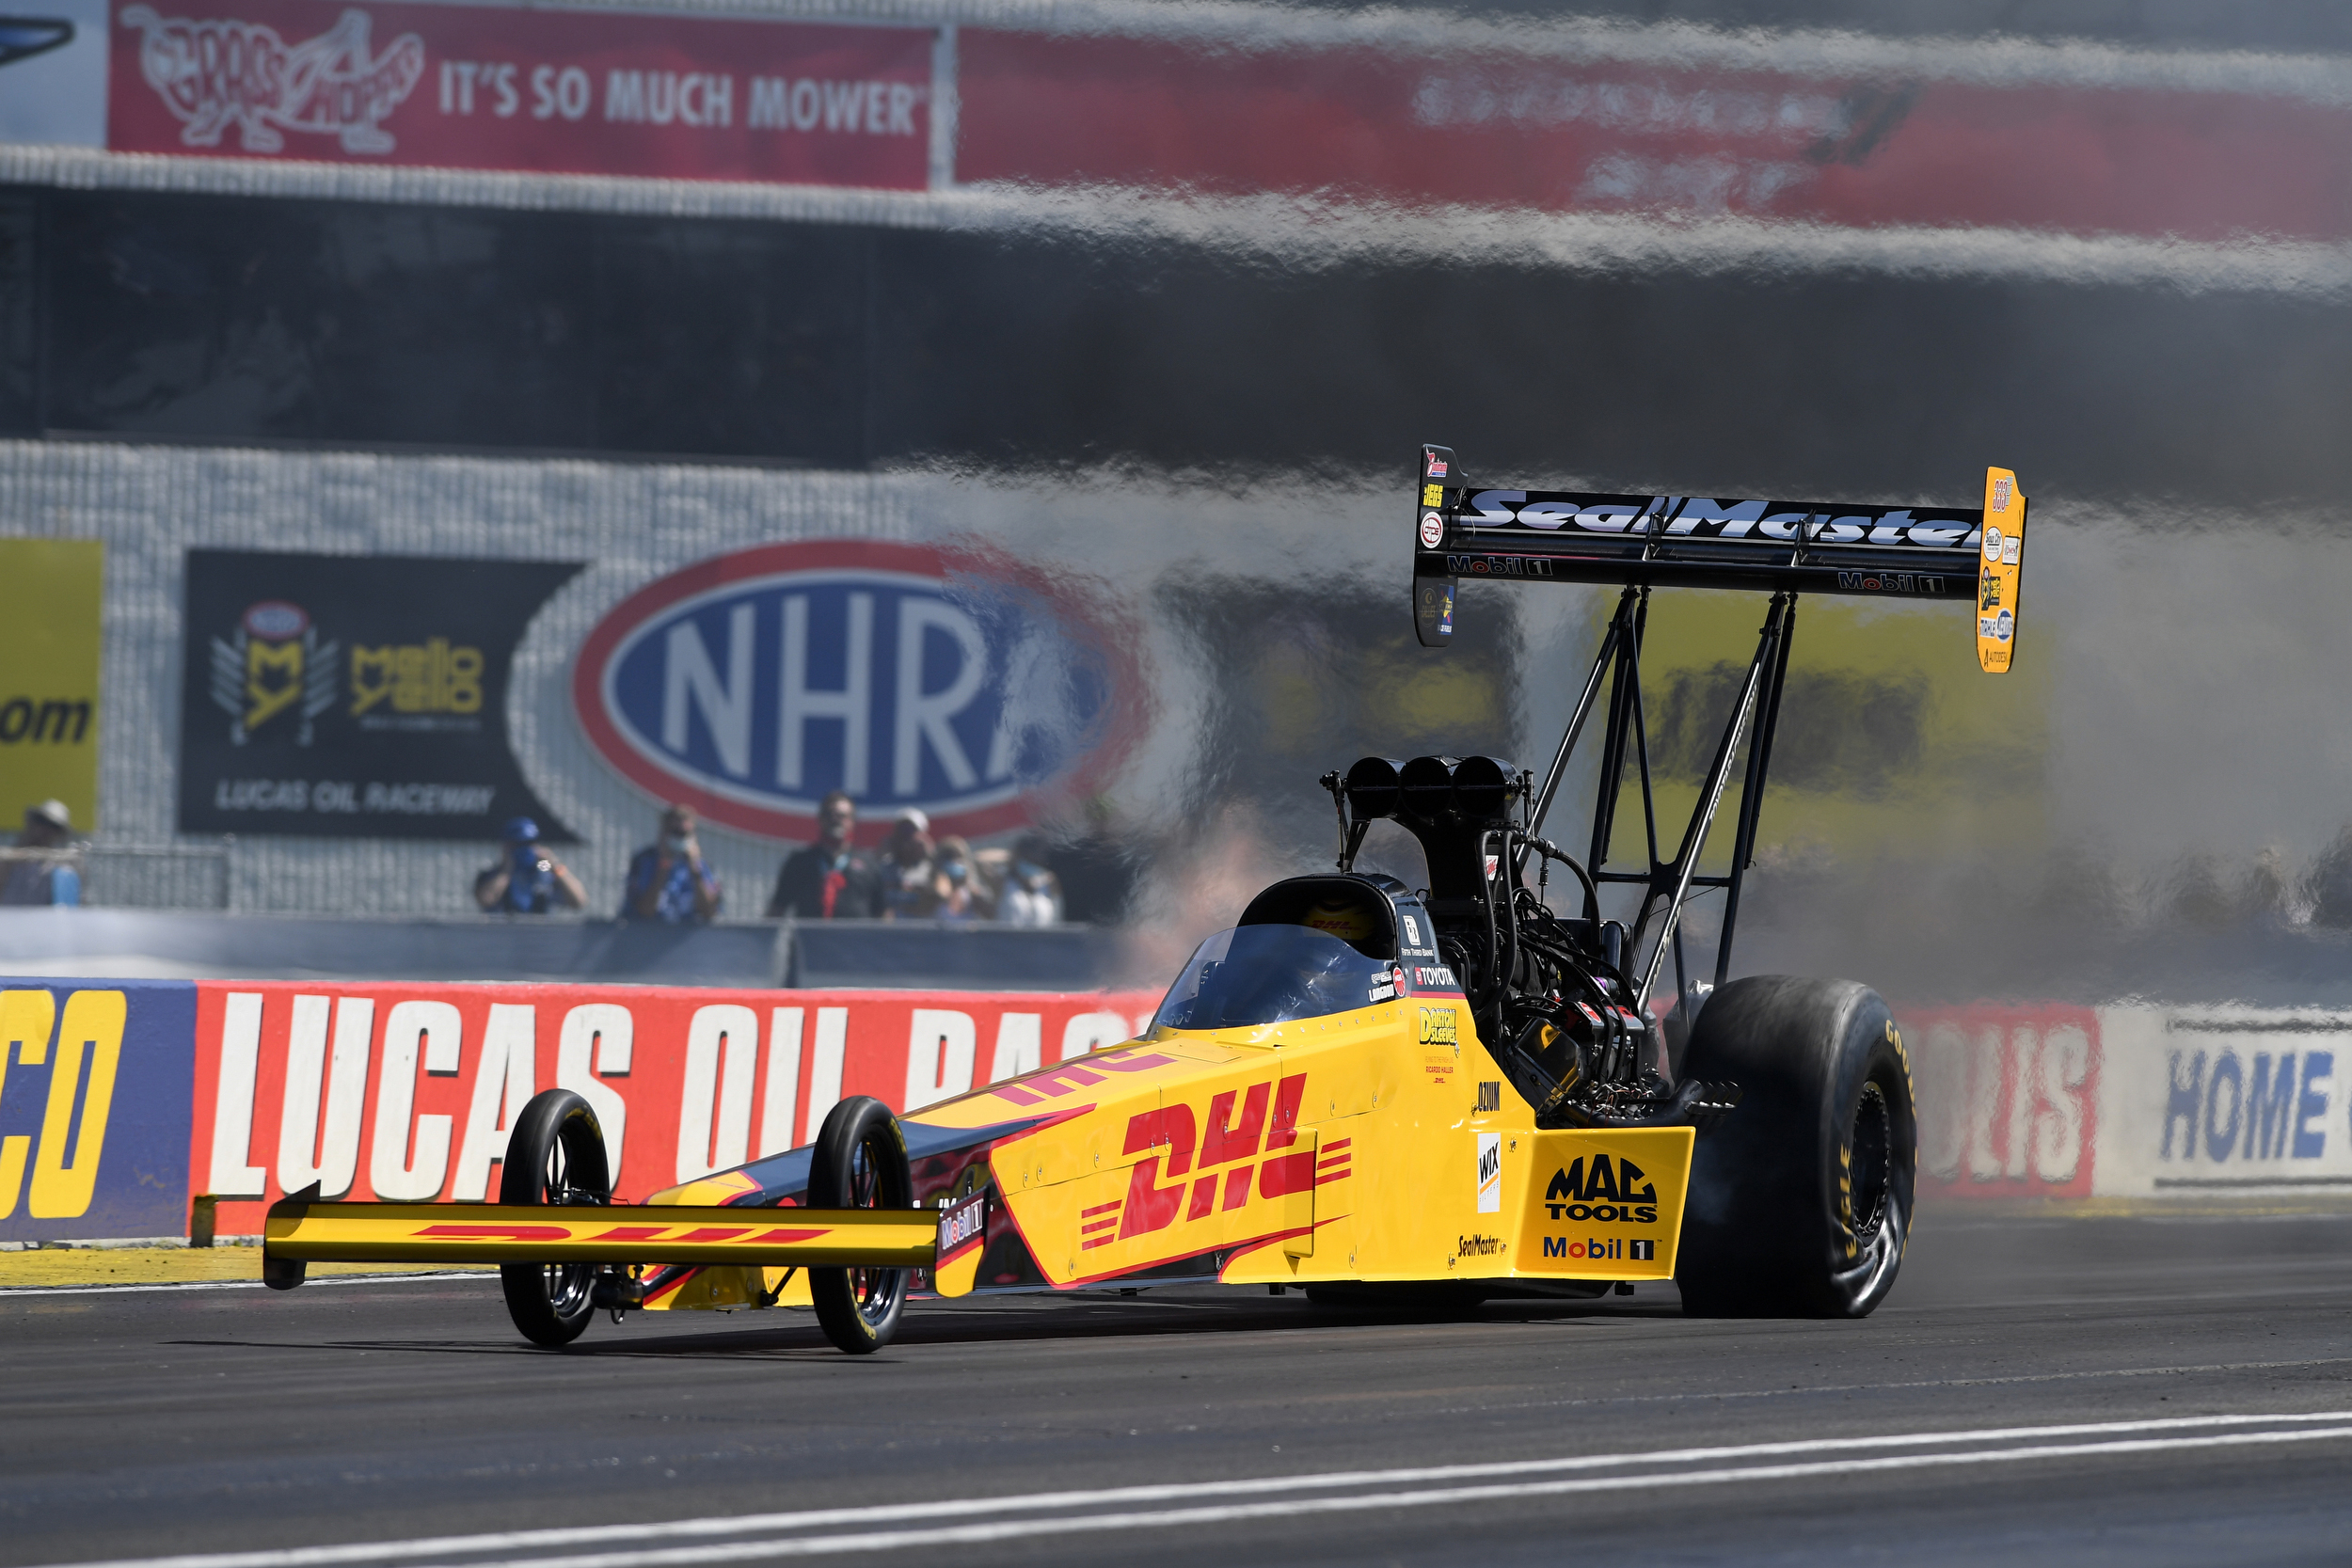 DHL Top Fuel Dragster pilot Shawn Langdon racing on Saturday at the Denso Spark Plugs U.S. Nationals